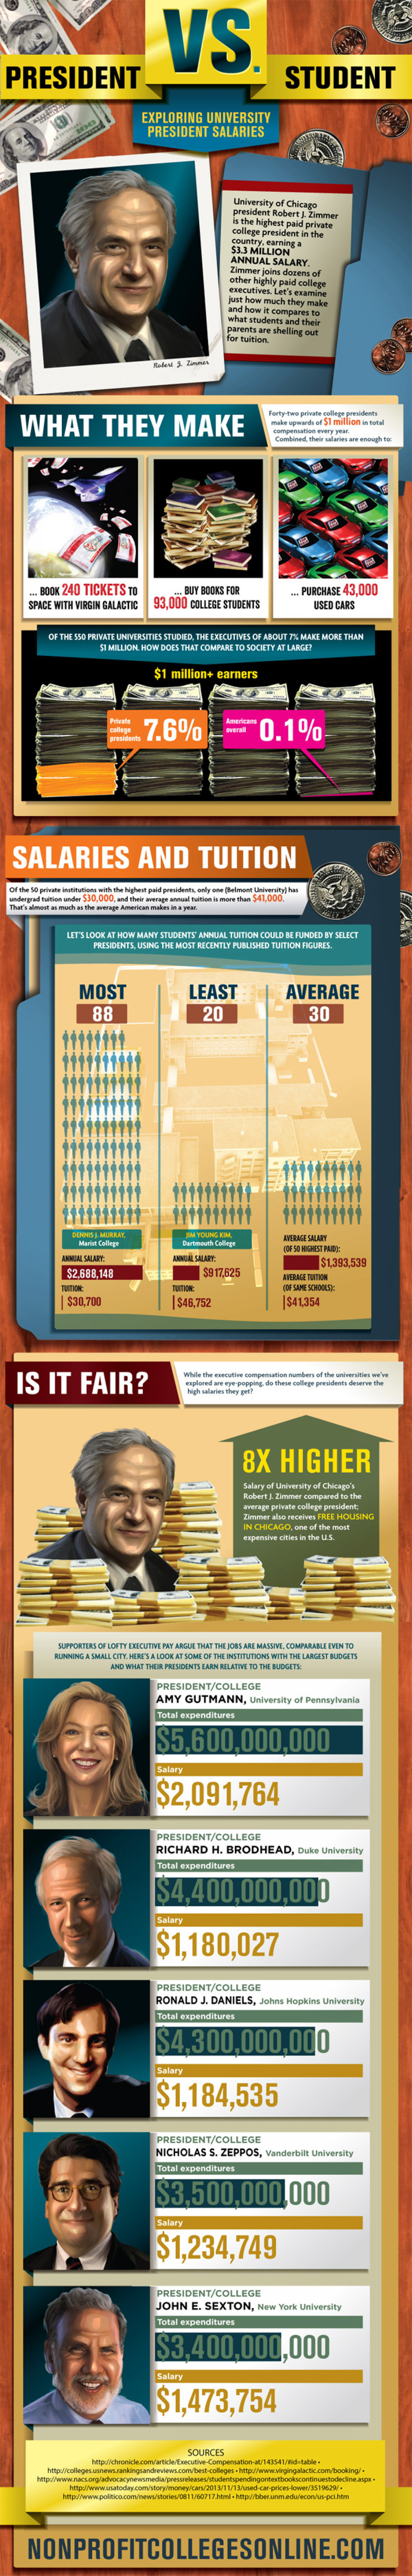 President Vs. Student: Exploring University President Salaries Infographic